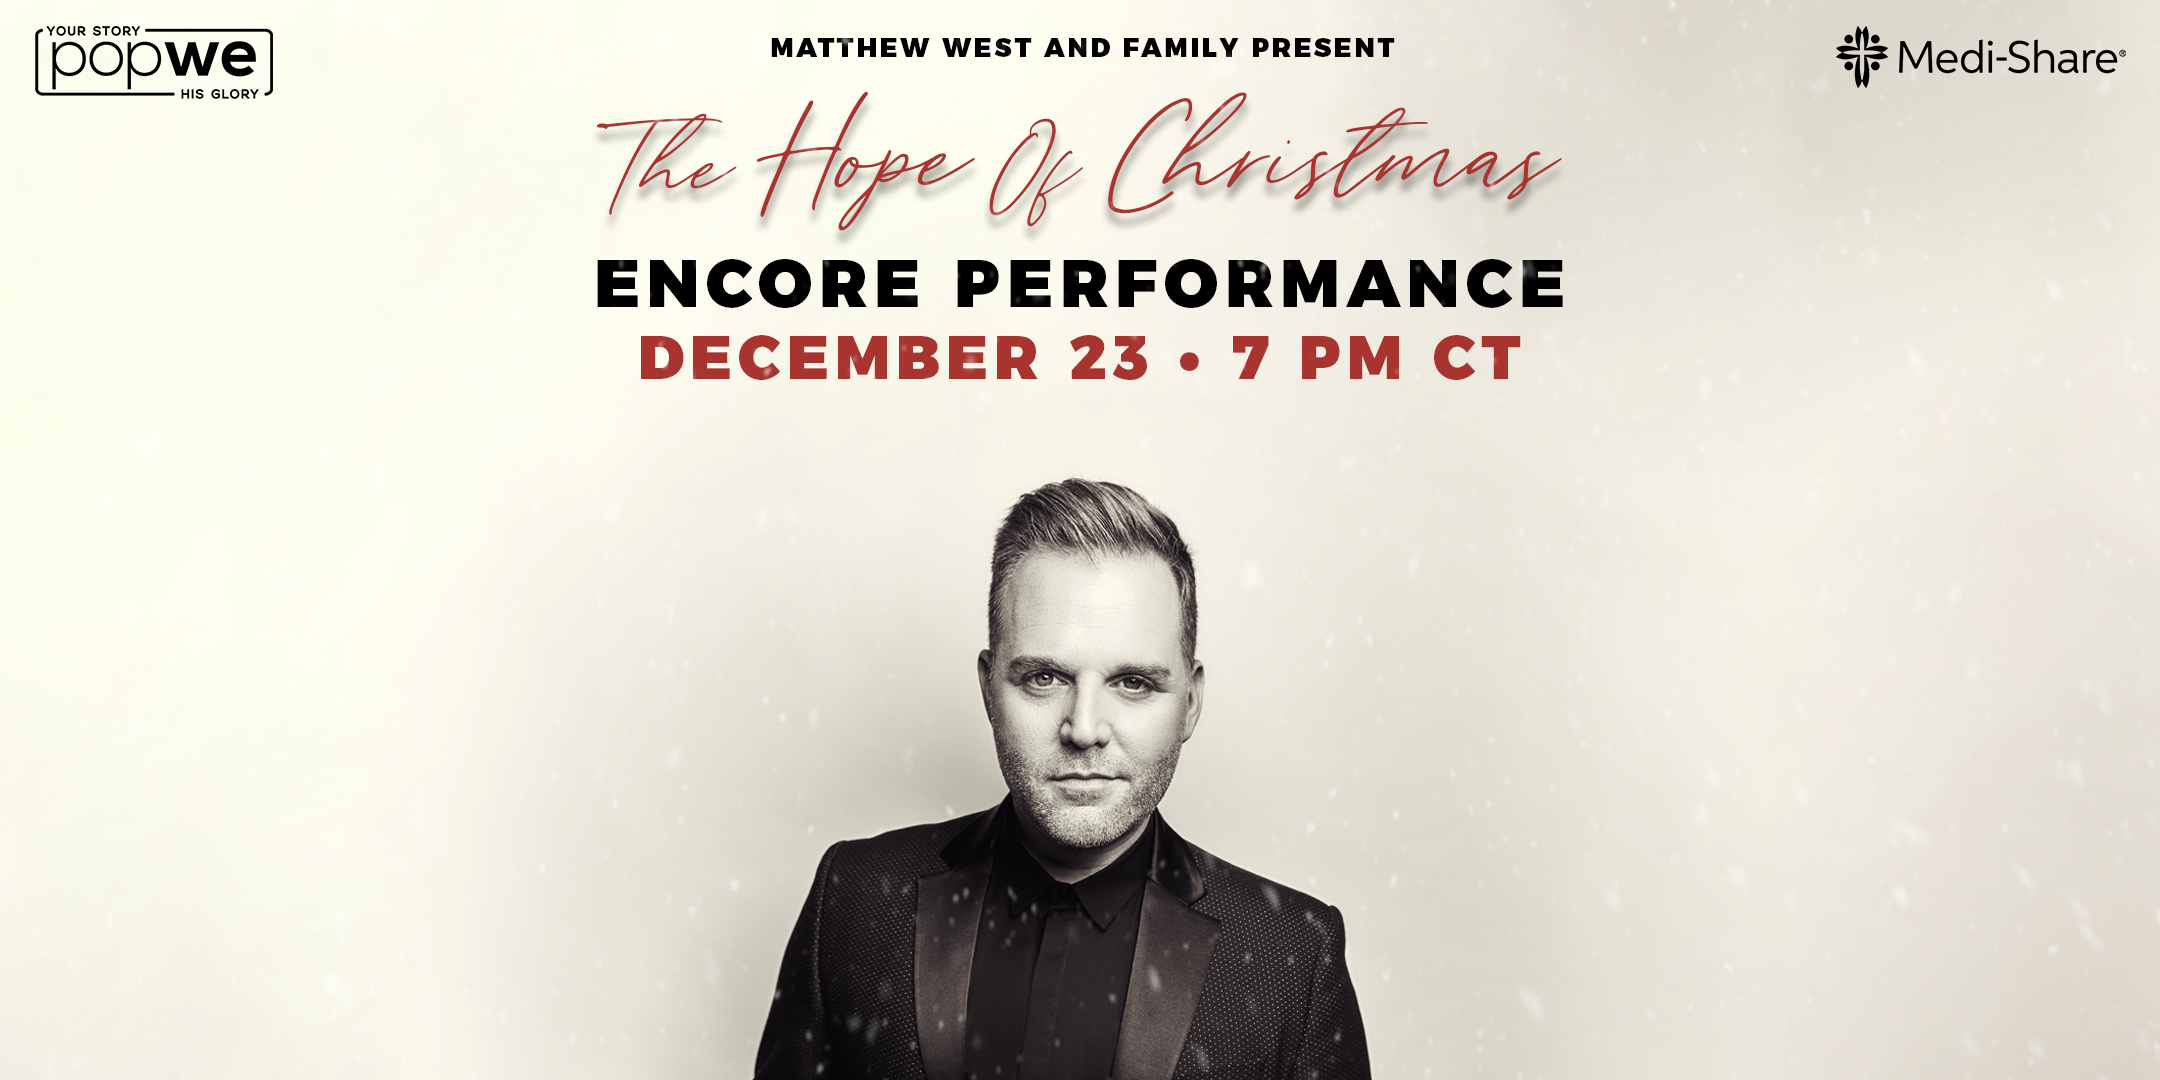 Matthew West & Family present: The Hope of Christmas Image